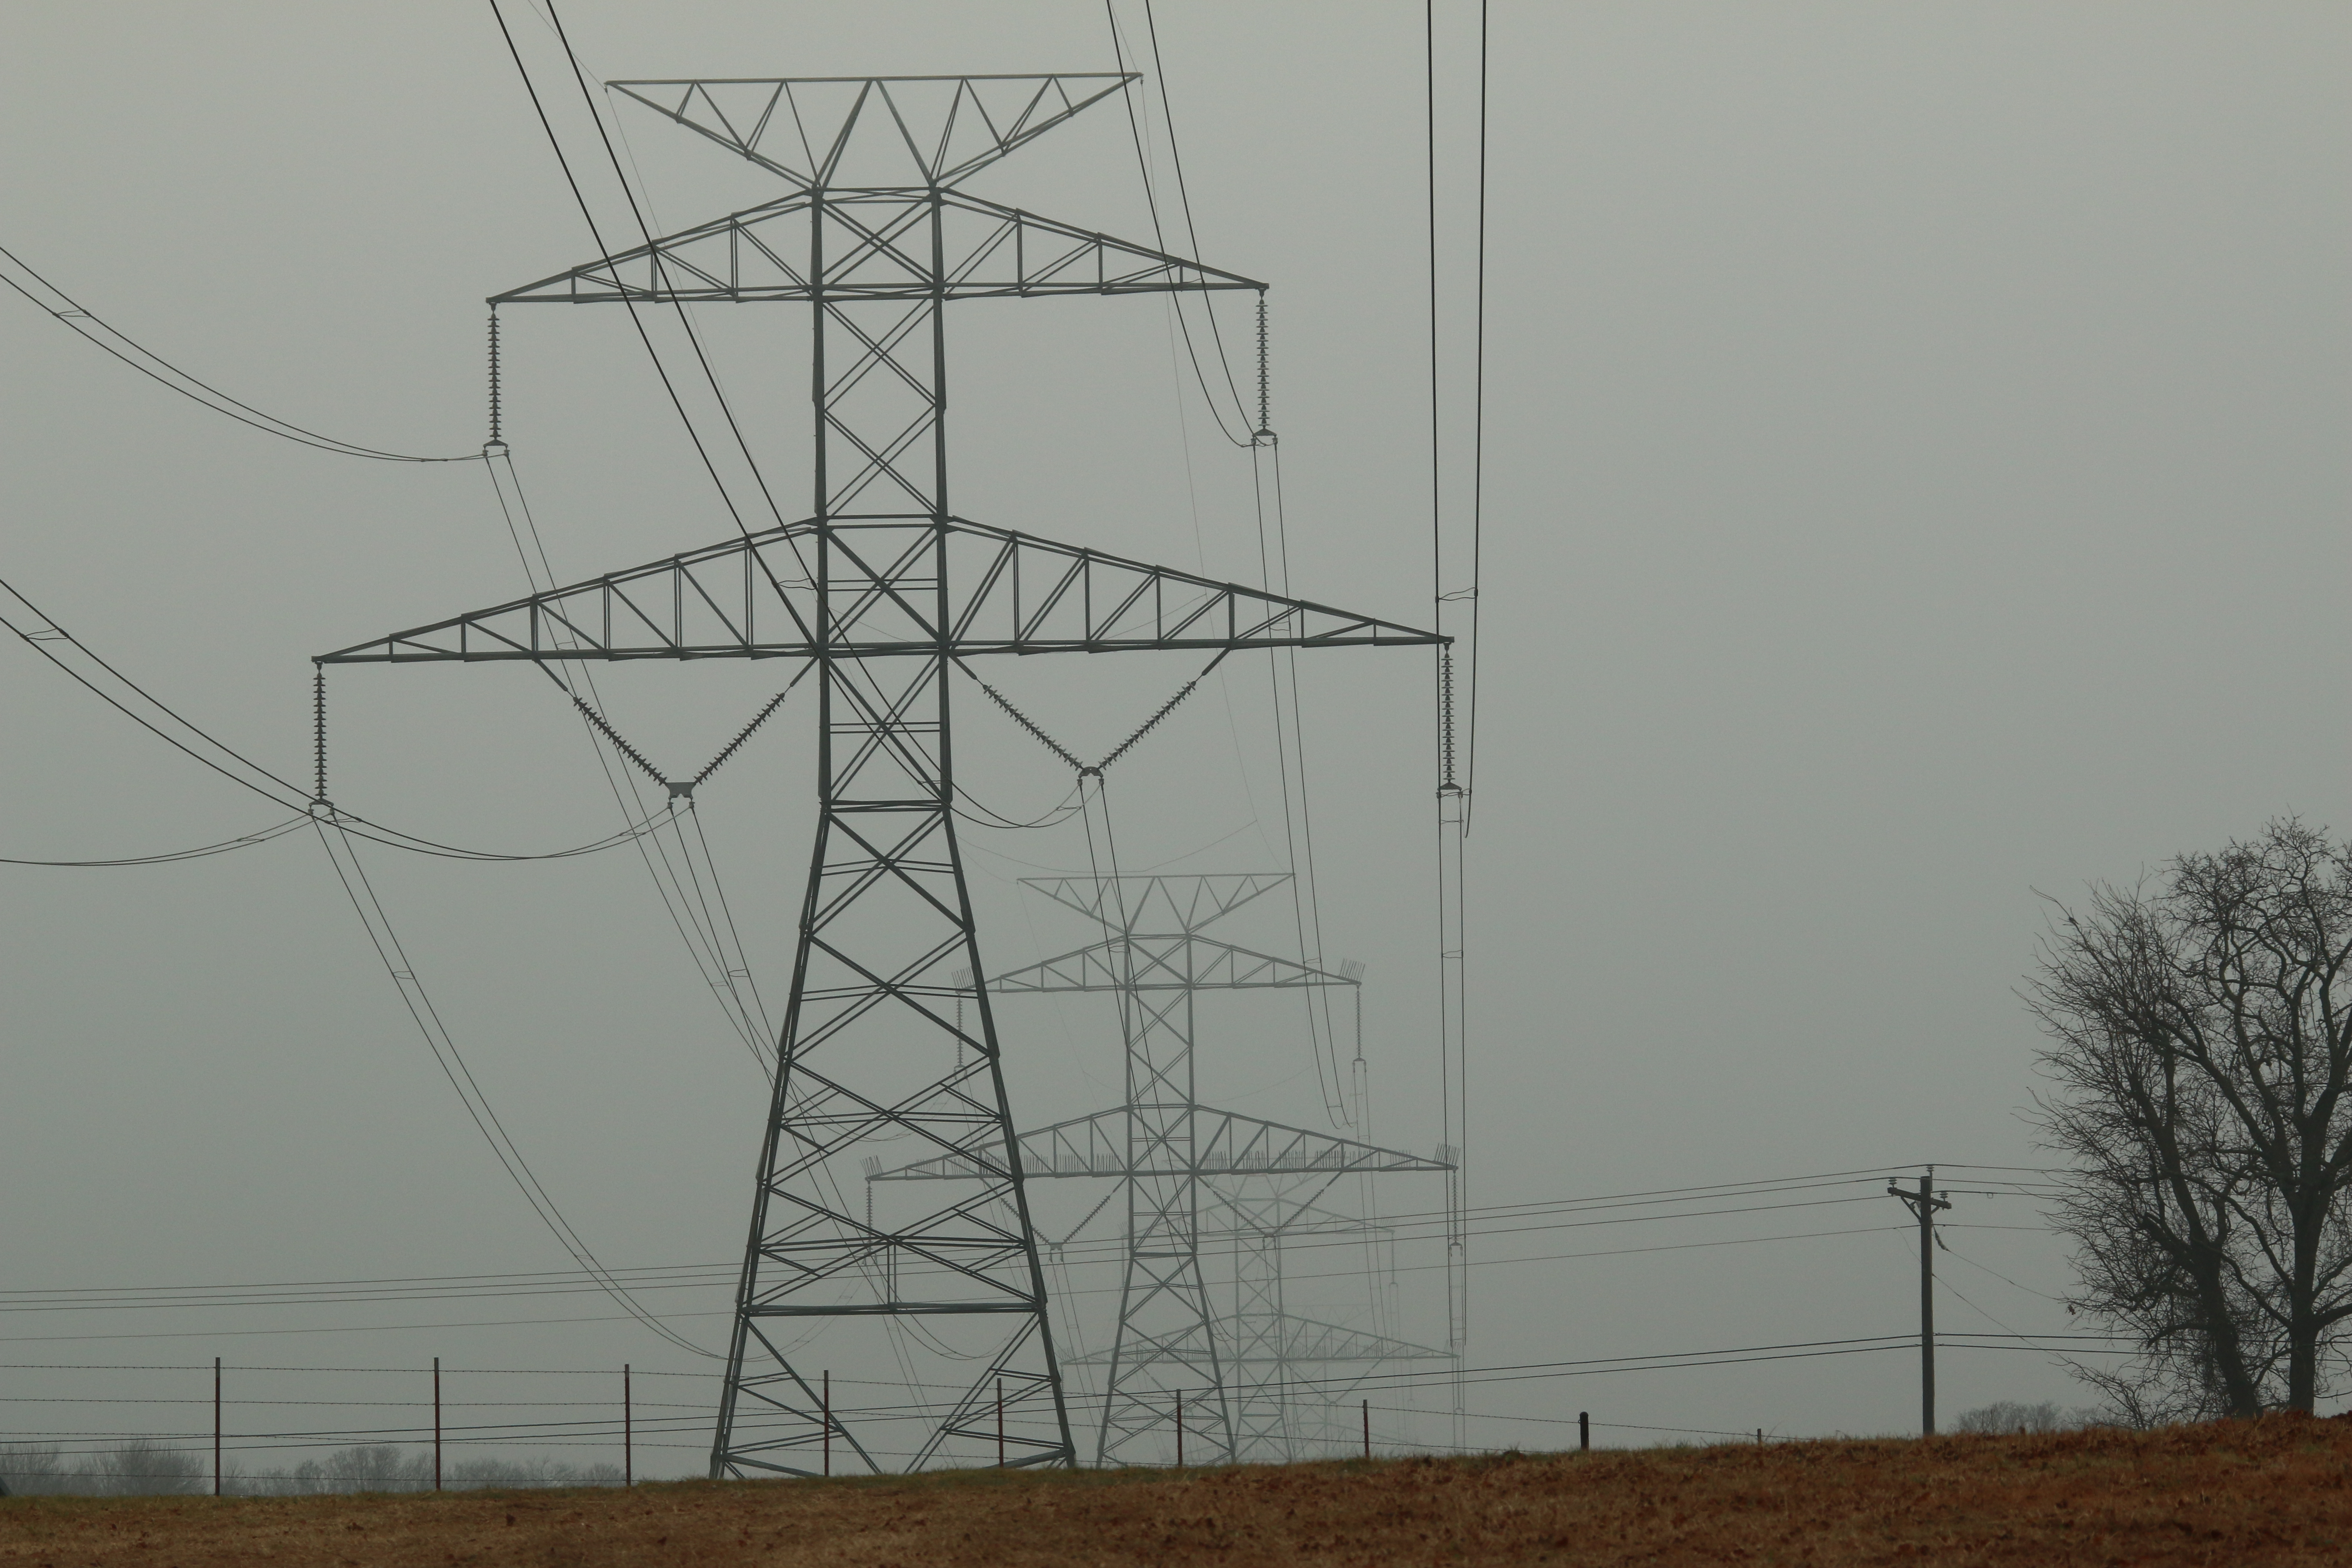 These towers supply power to major parts of southeast Dallas.